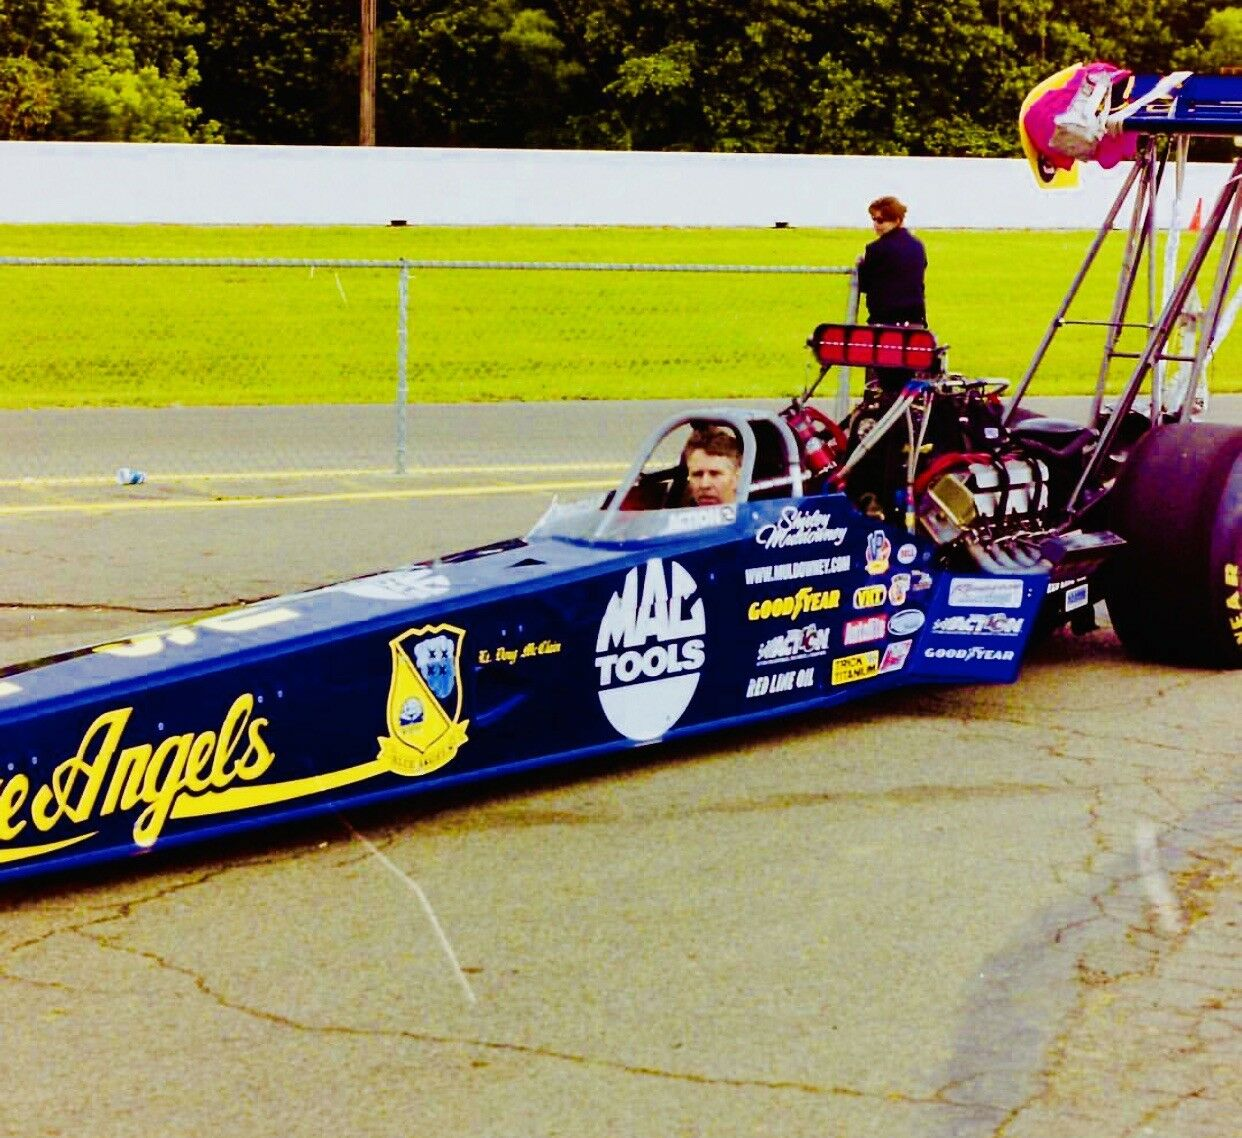 """NHRA Shirley Muldowney 1 24 24 24 Diecast blueE ANGELS Top Fuel Dragster NITRO """"Rare"""" e01697"""